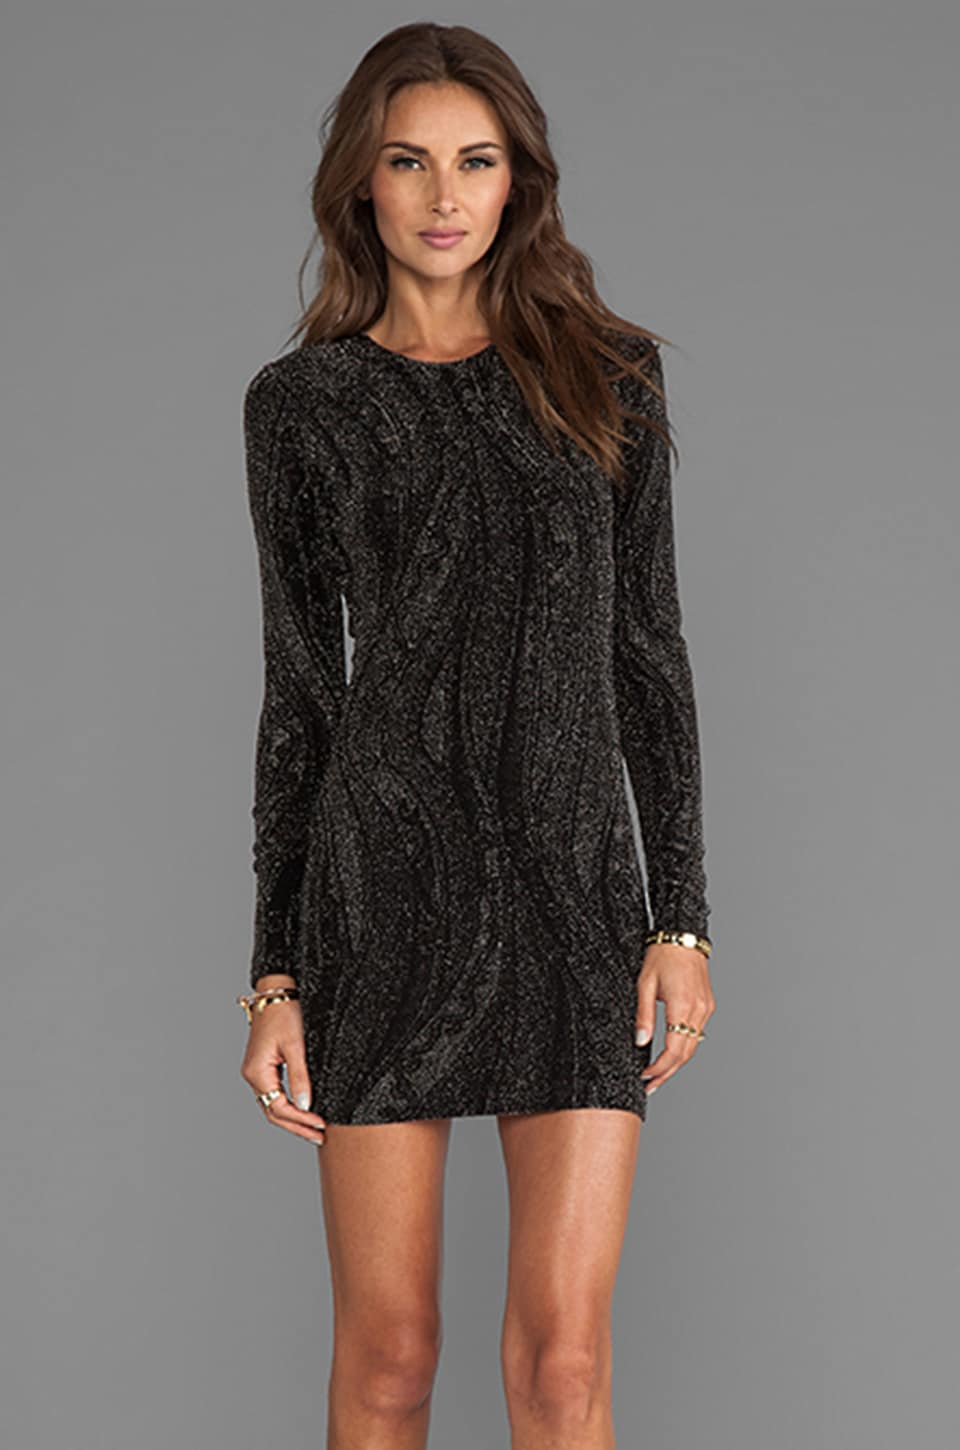 Torn by Ronny Kobo Zoe Dress in Black/Silver